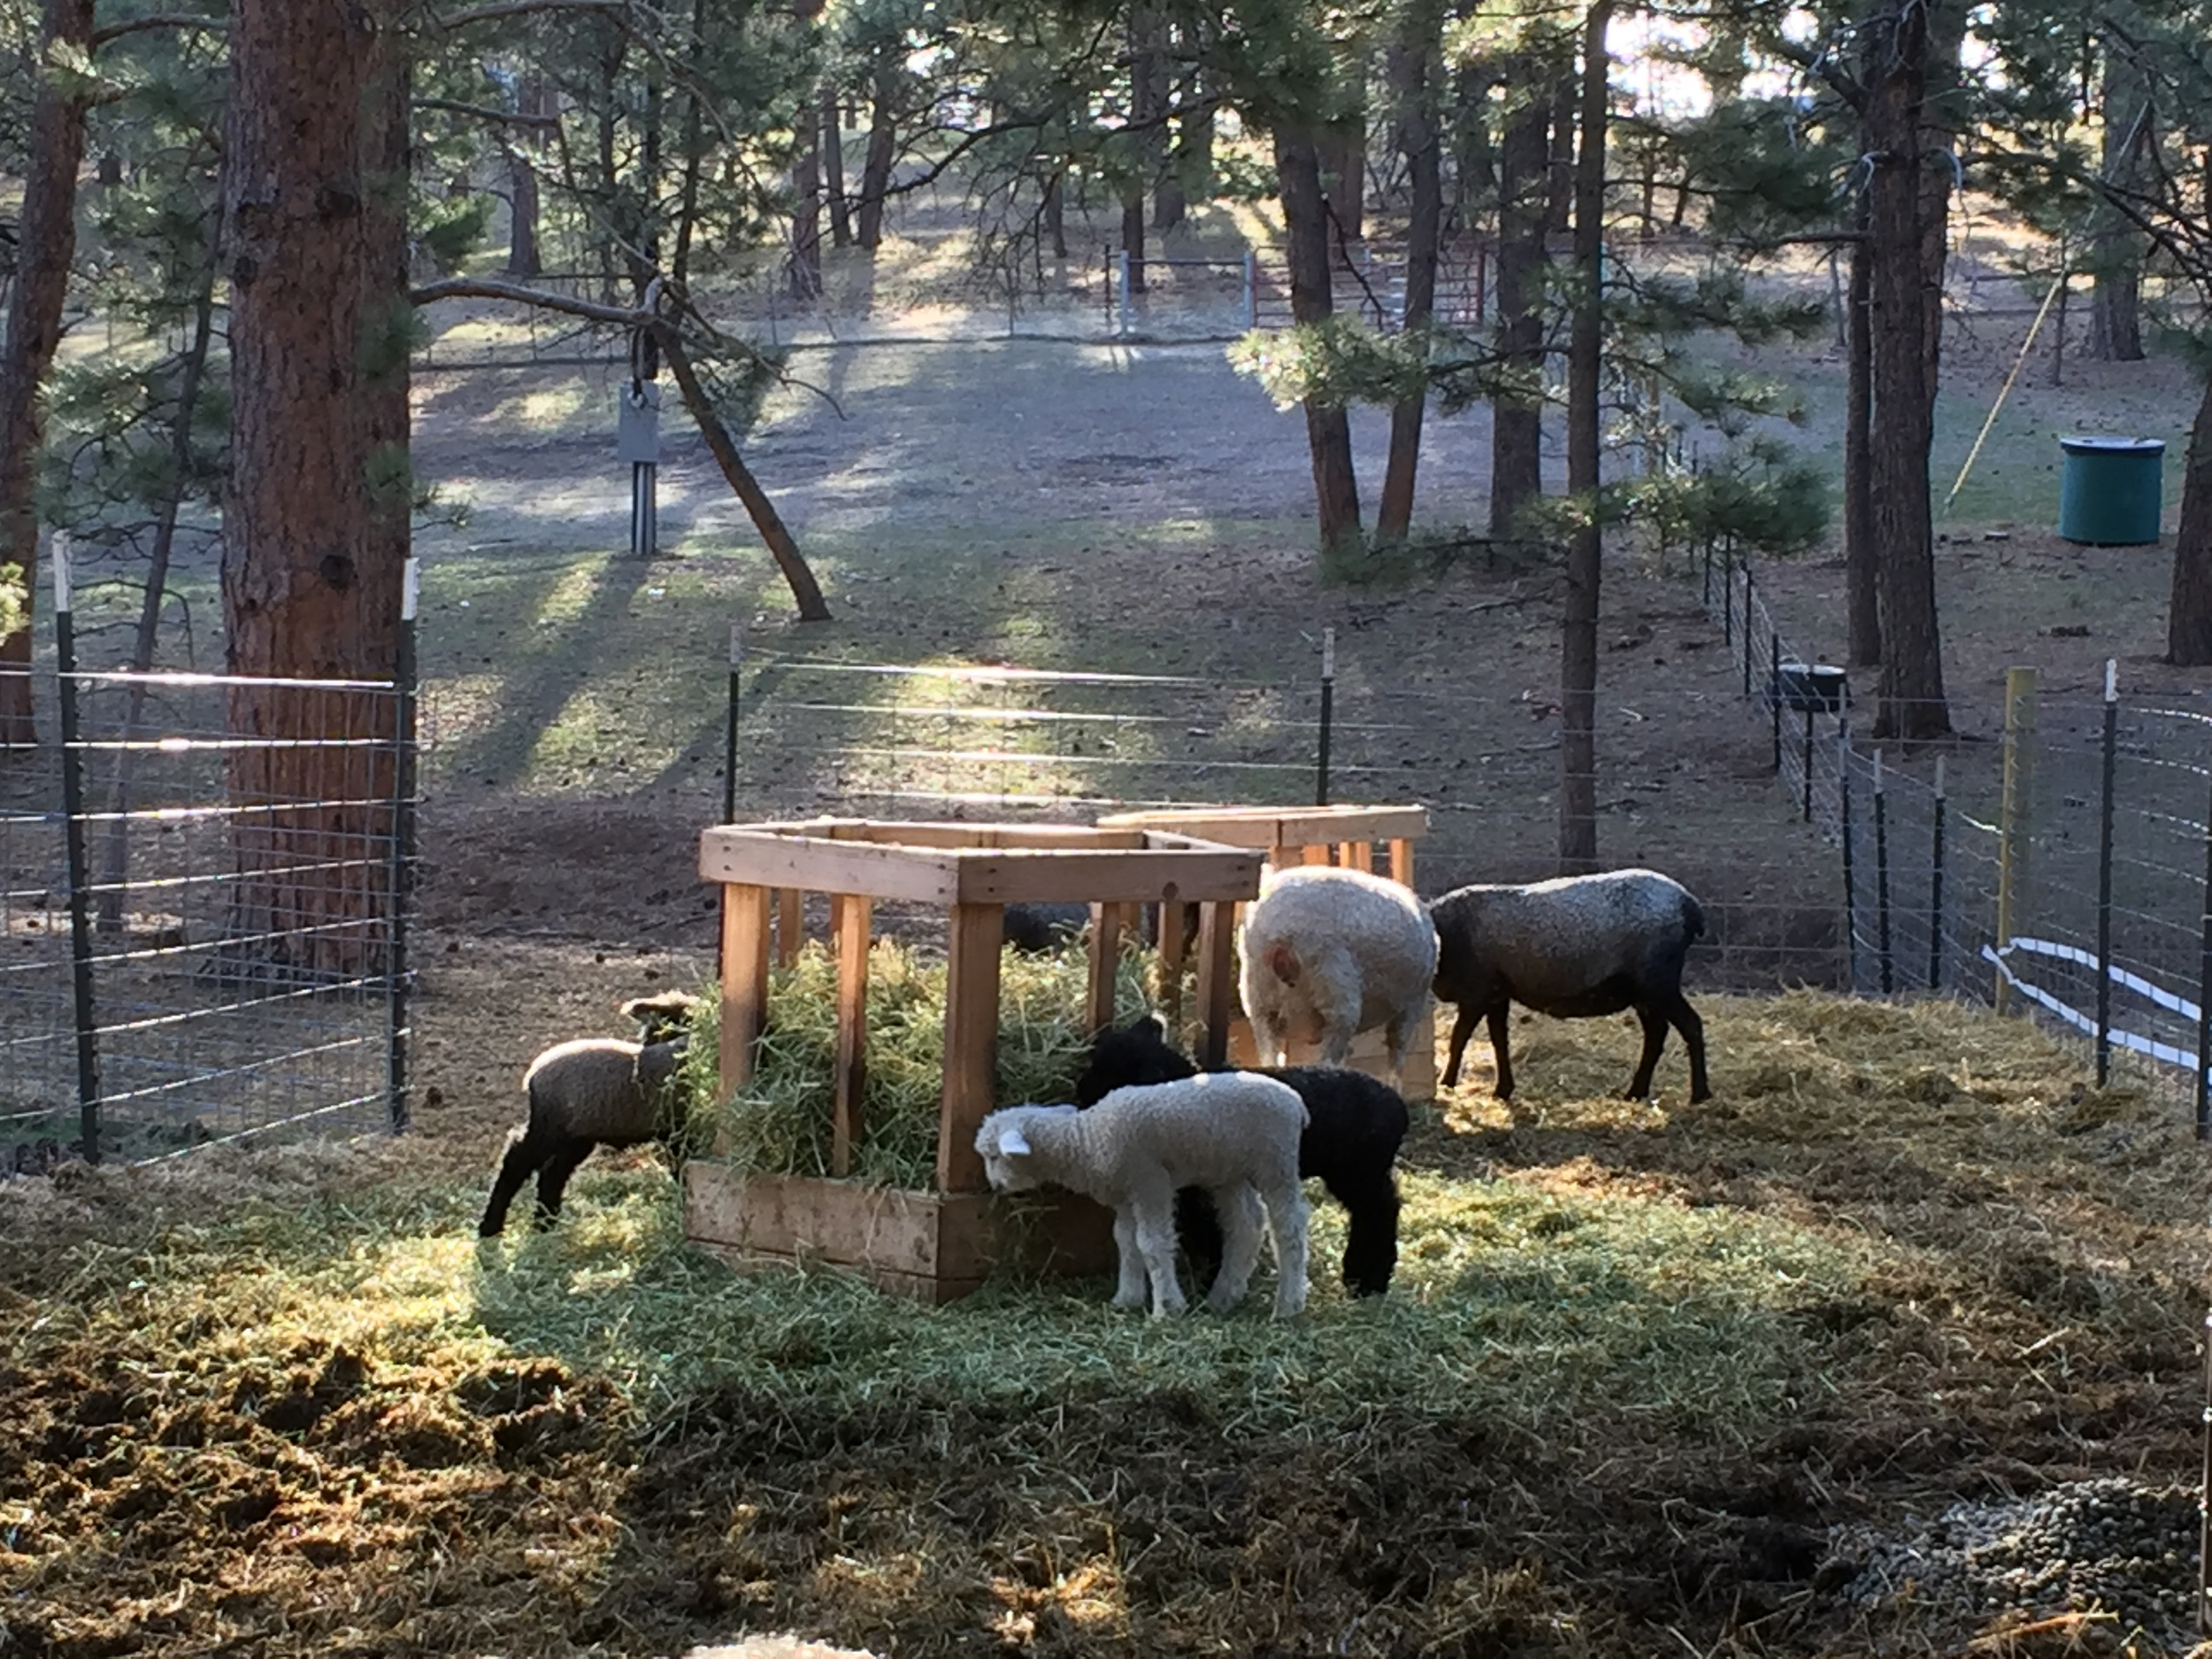 We will finish this post with a beautiful picture of the mama's and lambs in the morning light.